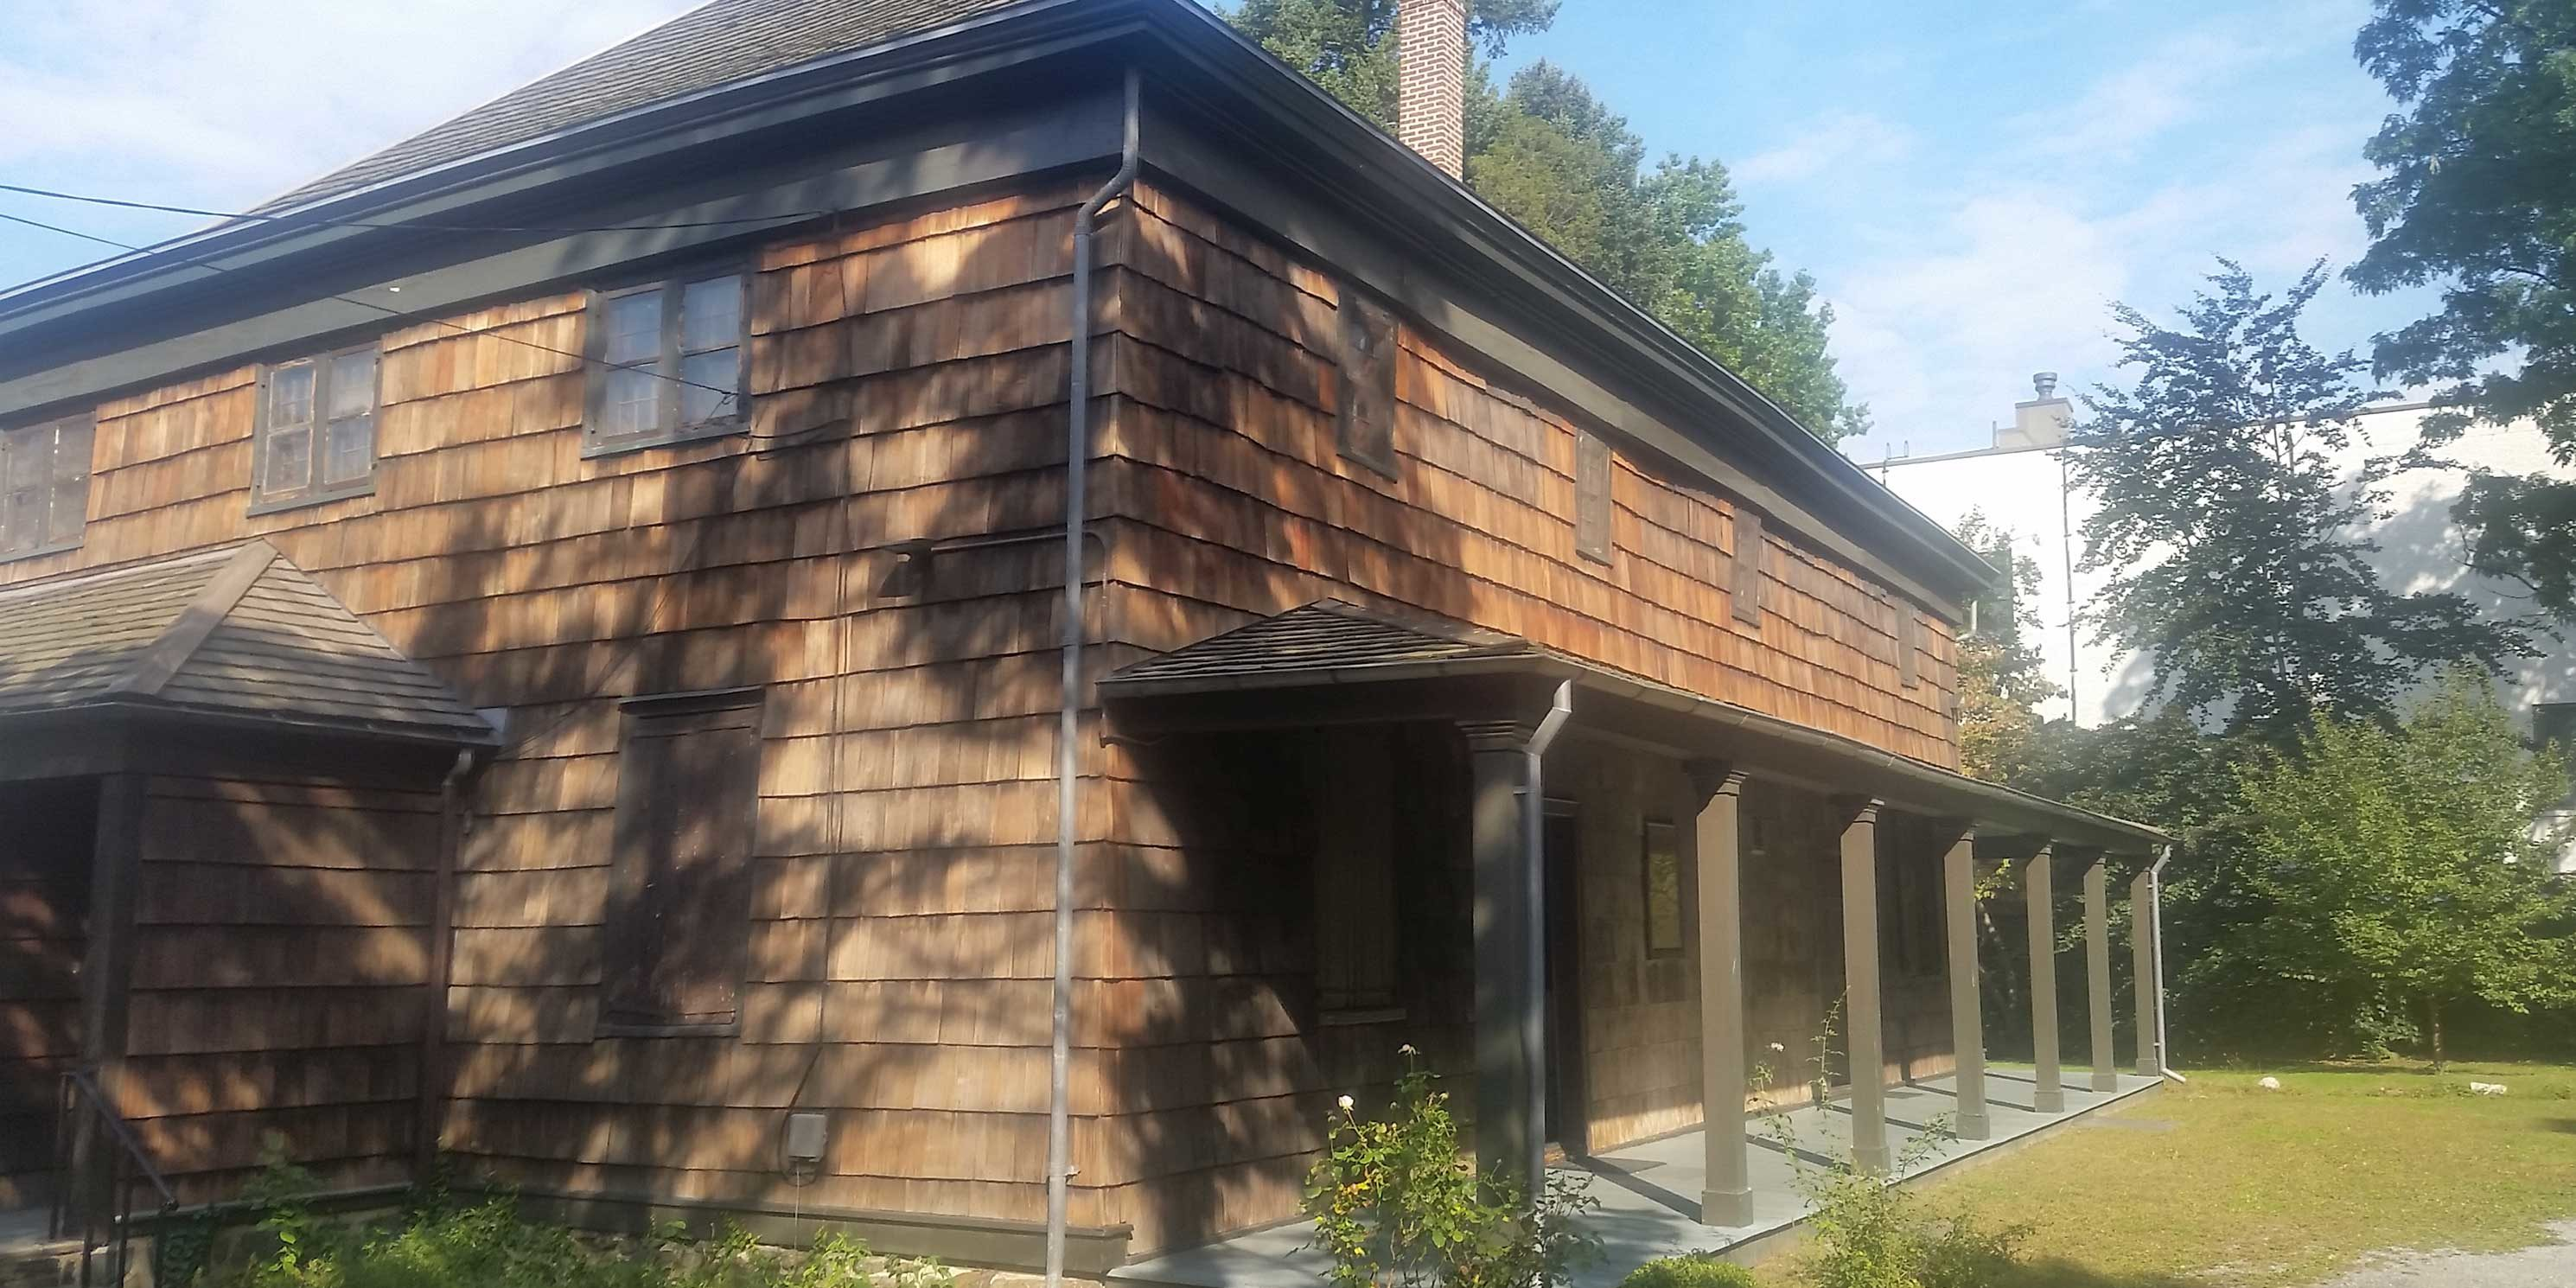 exterior of the wooden Quaker Meeting House in Queens, New York